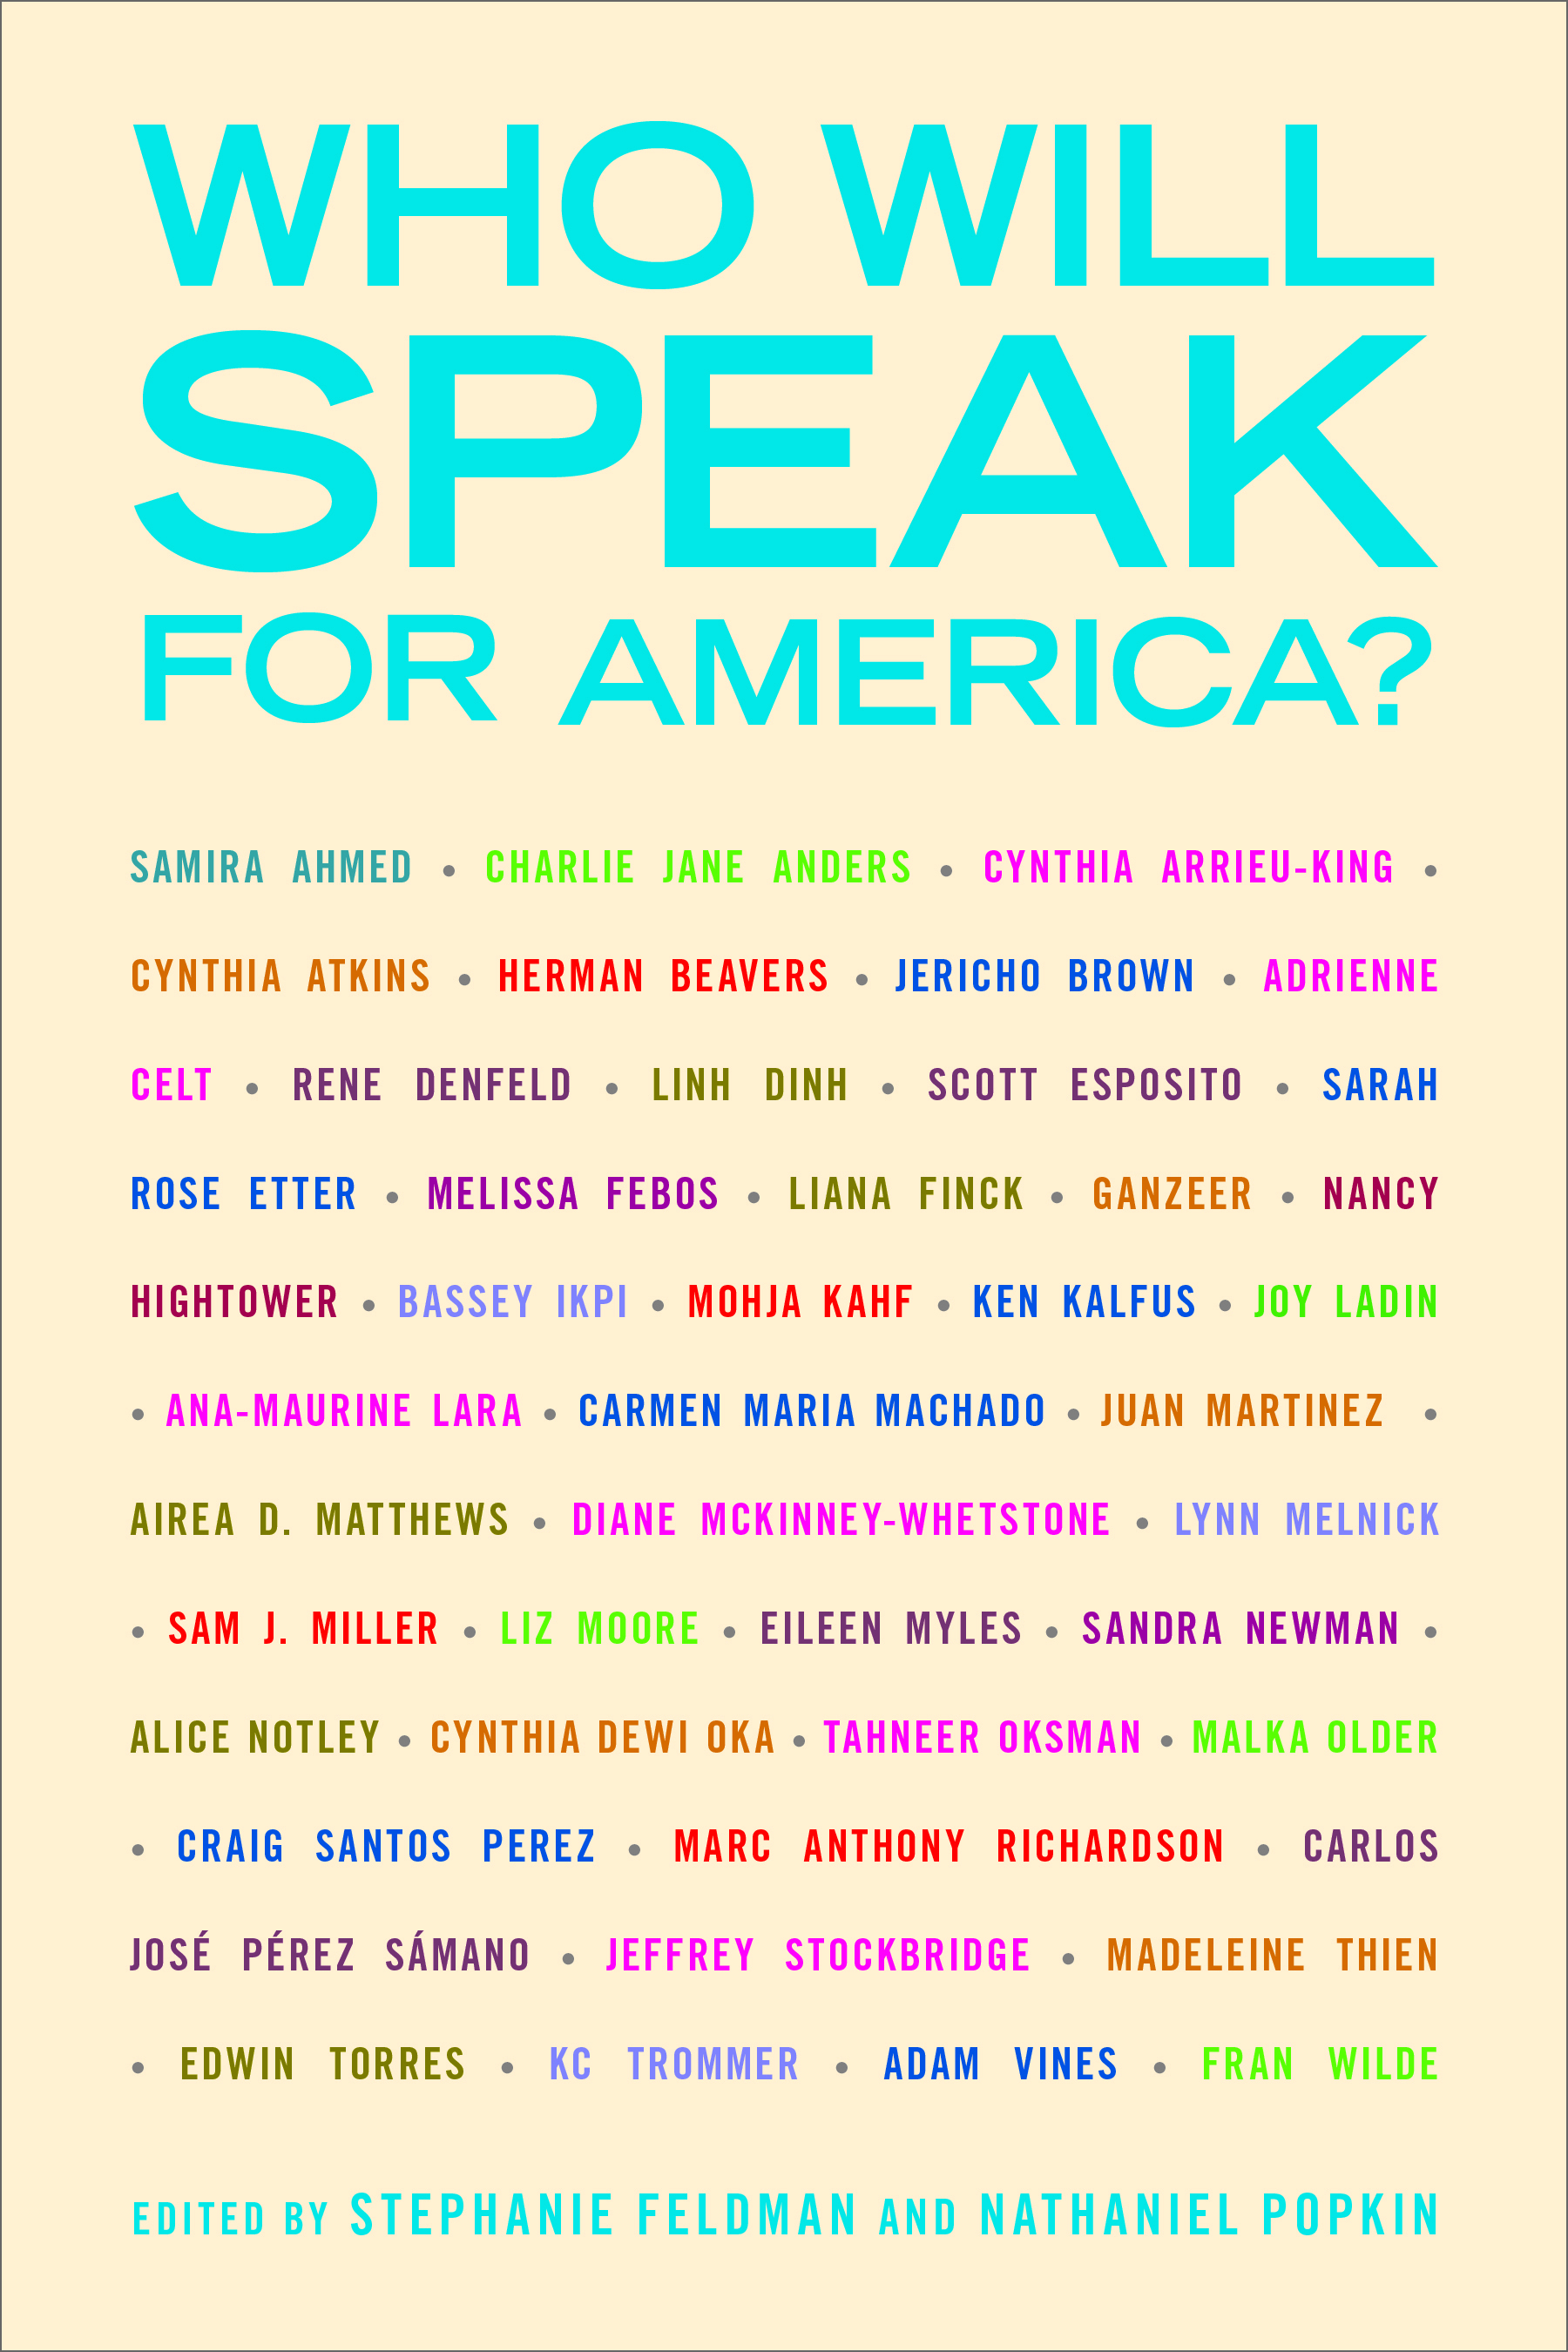 Book Launch: Who Will Speak for America? Edited by Stephanie Feldman & Nathaniel Popkin — Featuring Readings by KC Trommer, Sam J. Miller, Nancy Hightower, Edwin Torres, & Herman Beavers